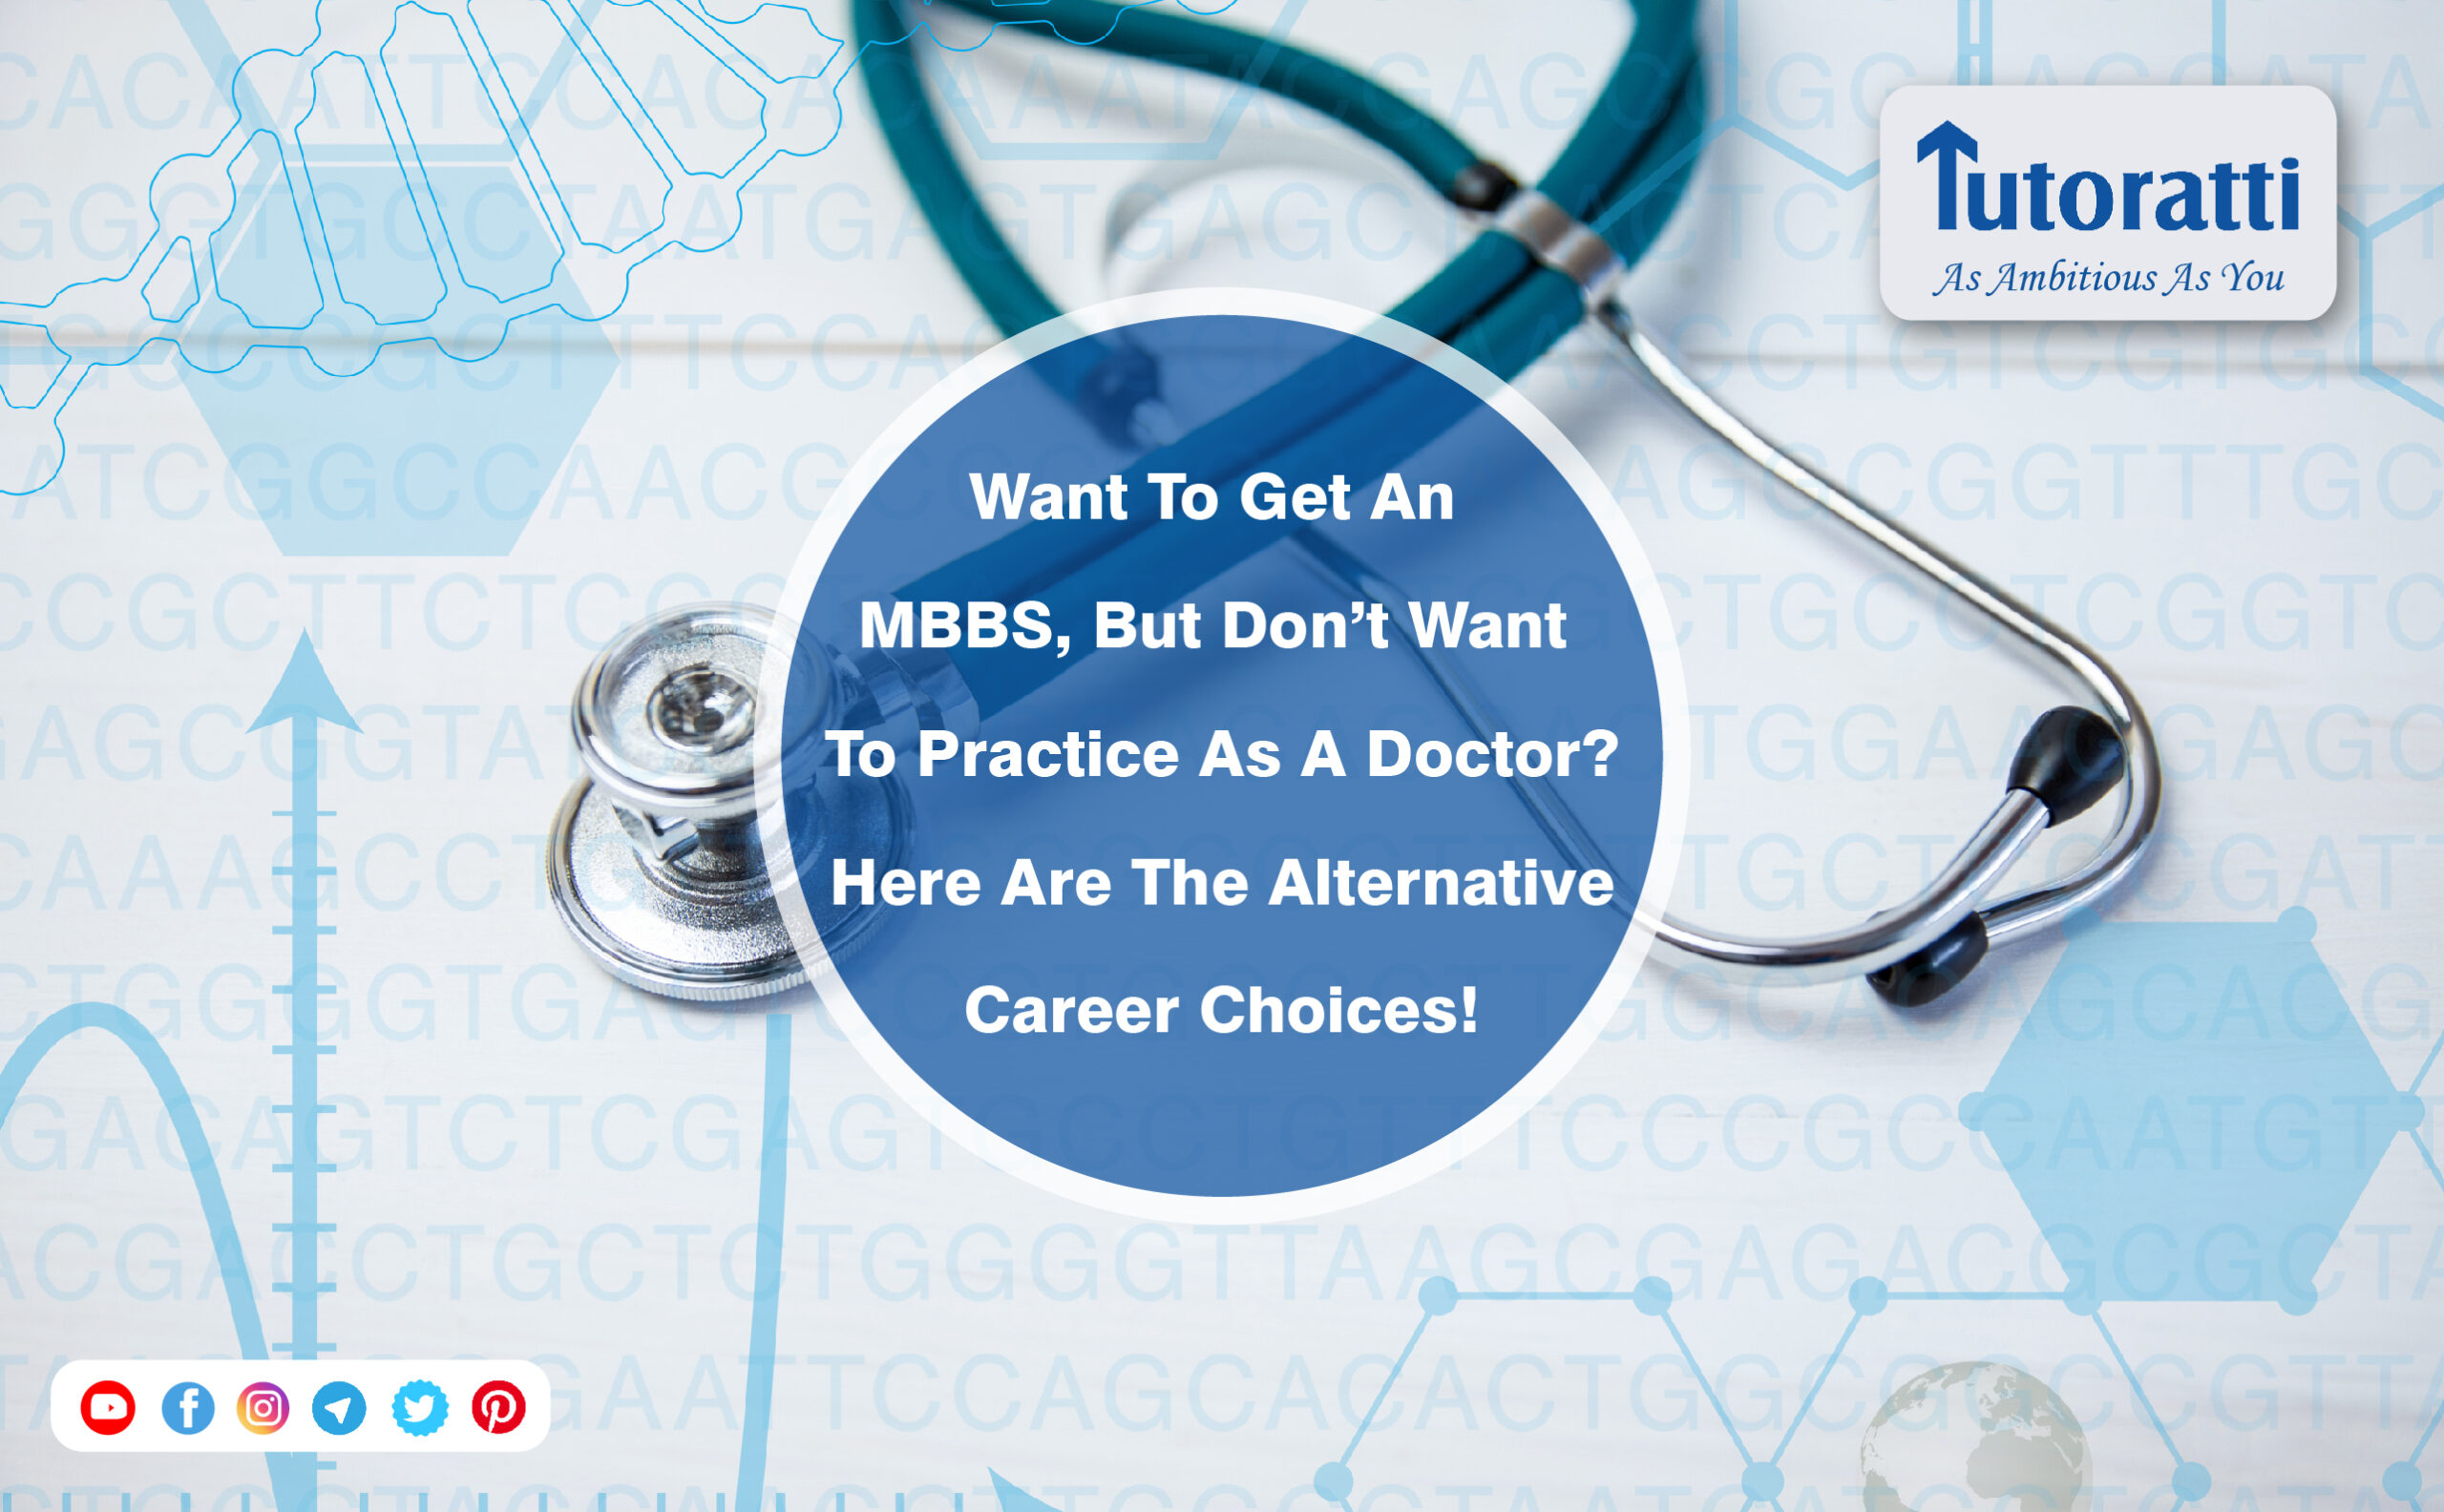 Want To Get An MBBS, But Don't Want To Practice As A Doctor? Here Are The Alternative Career Choices!